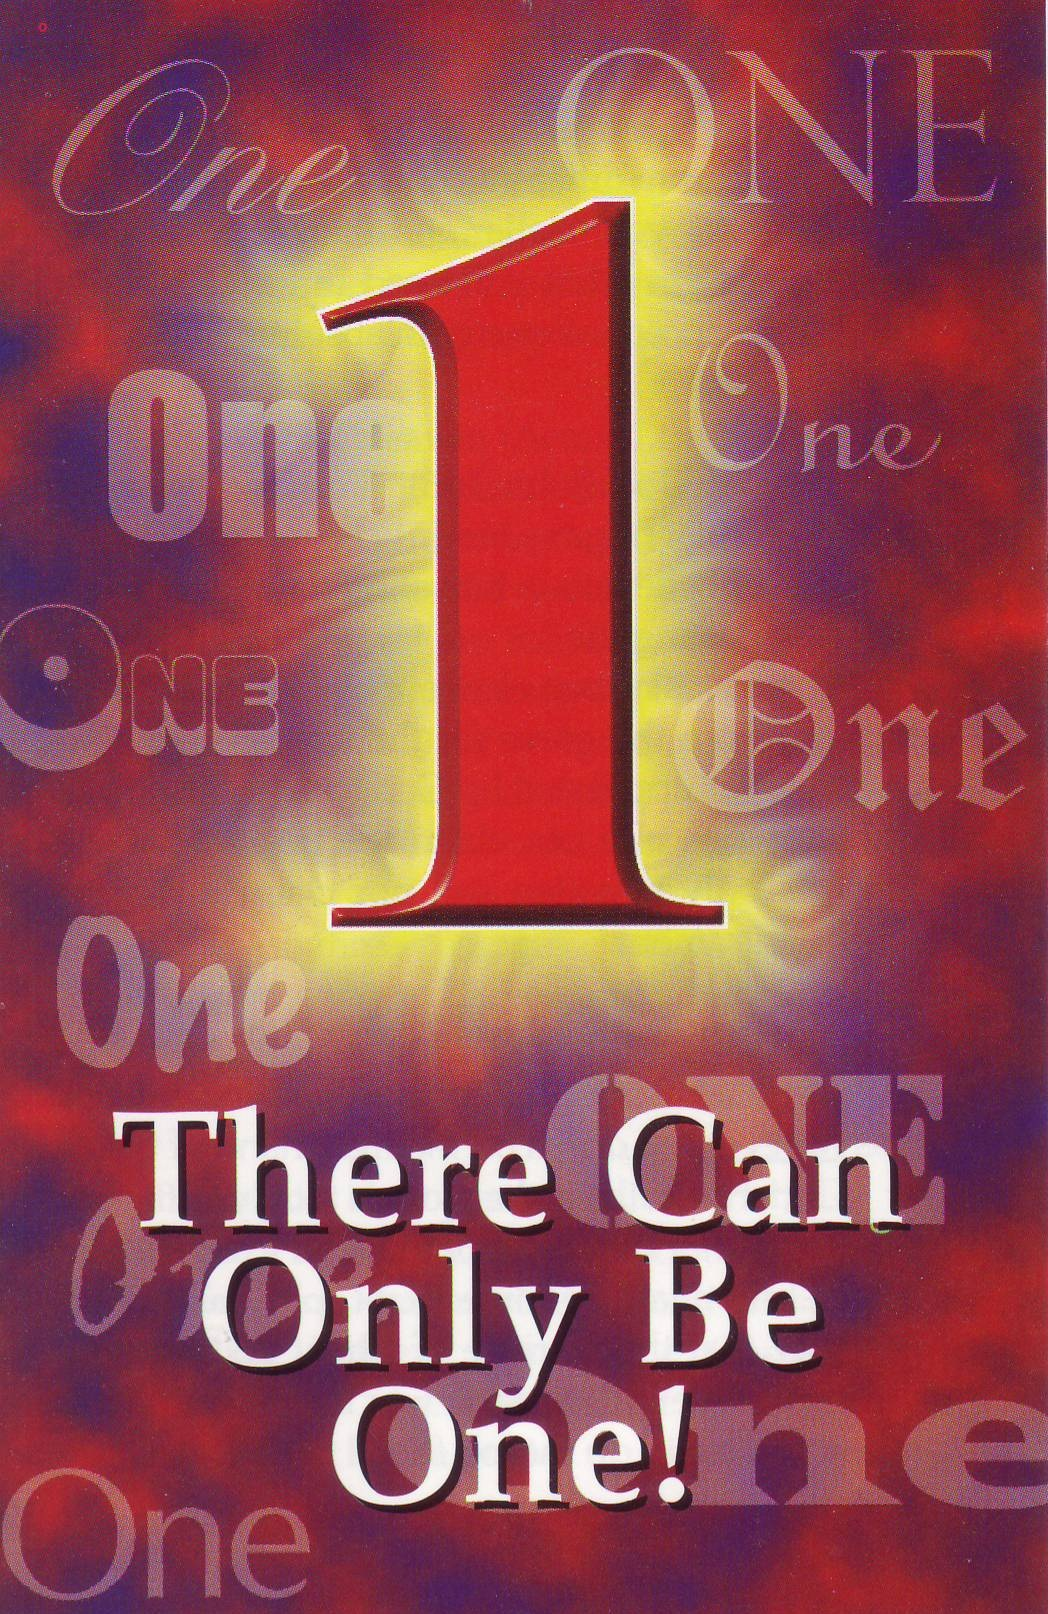 There Can Only Be One! - C. G. Johnson